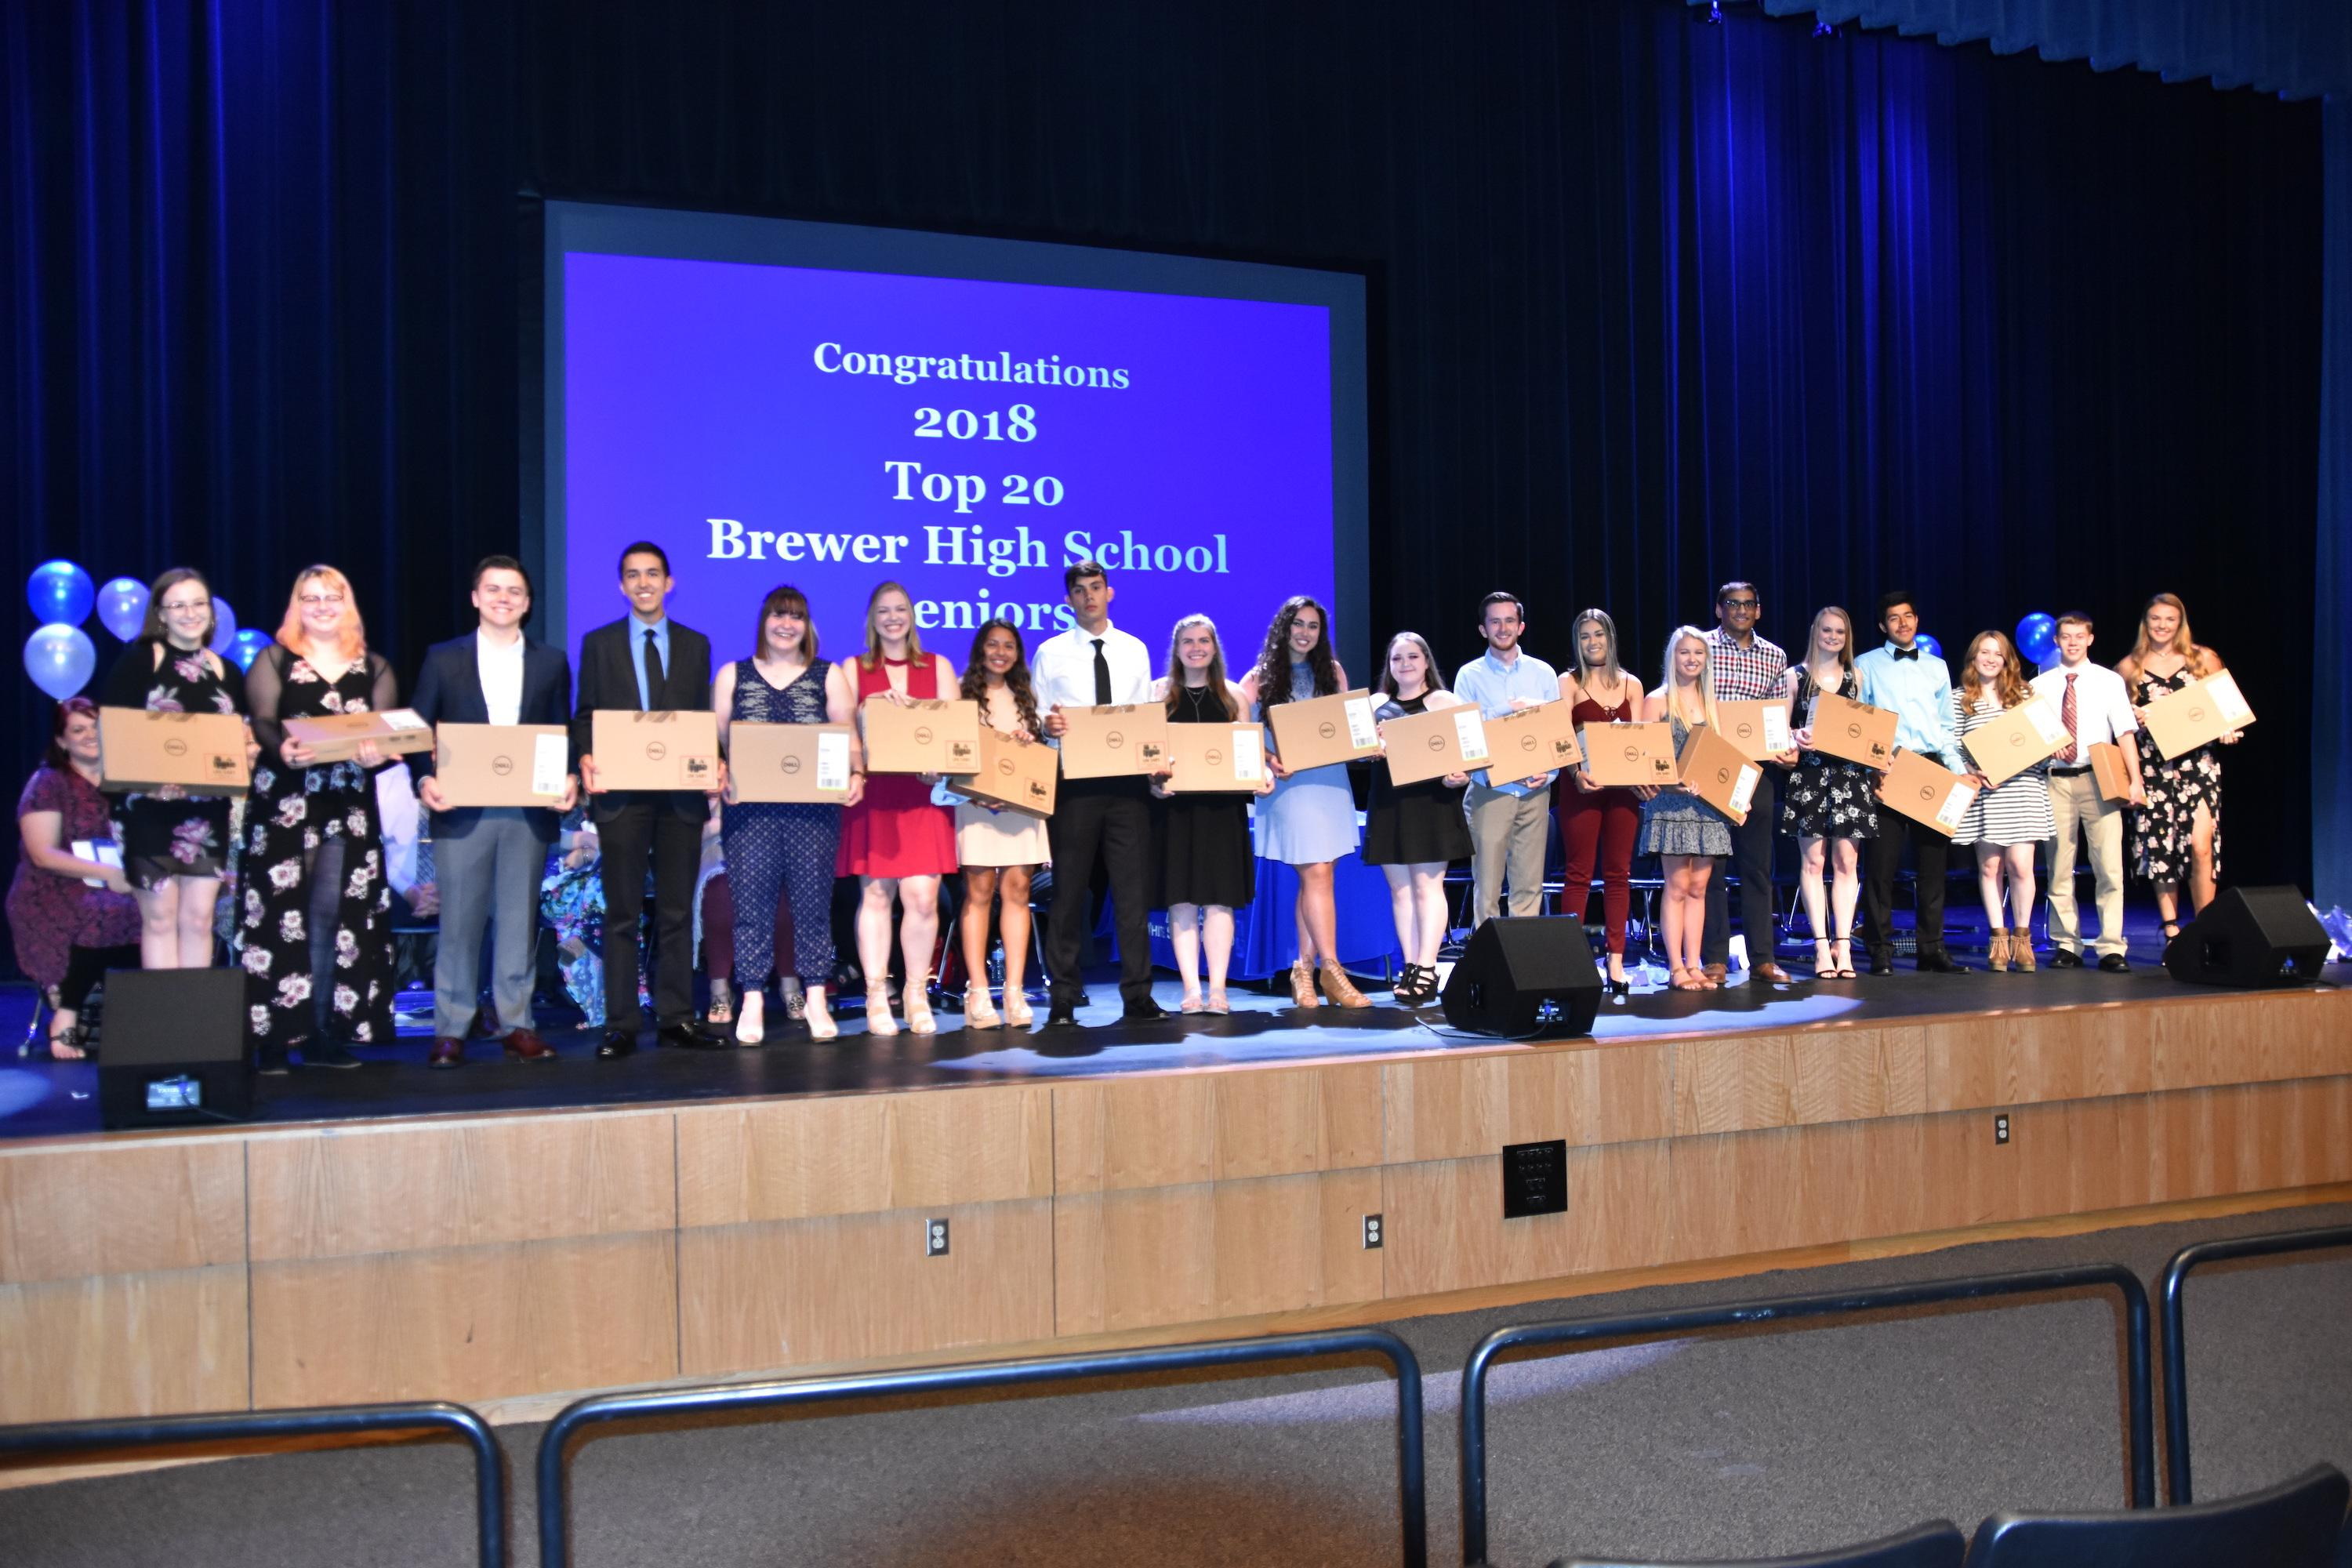 The WSISD Education Foundation honored the top 20 Brewer High School students during its 14th annual Hats Off Academic Recognition Ceremony on May 14.